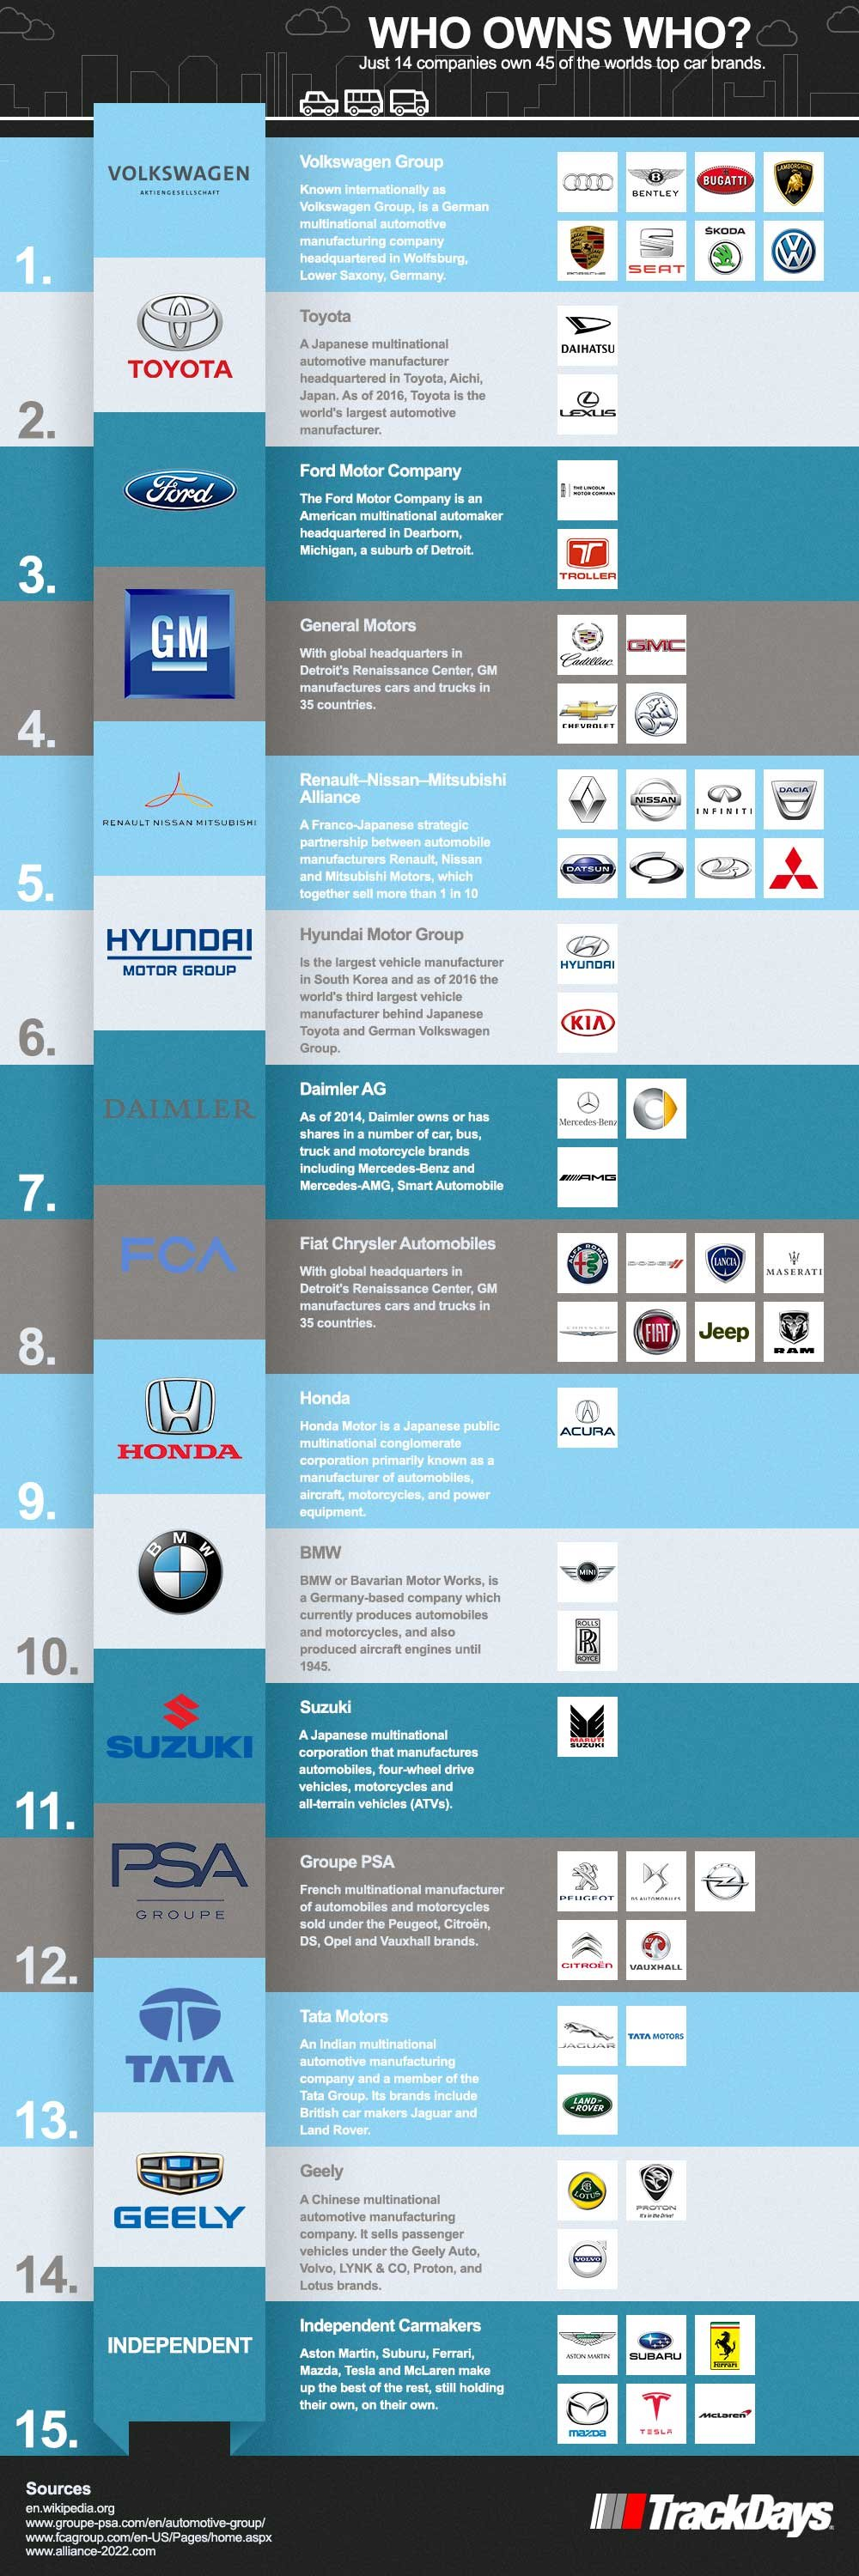 Who Owns Audi >> Who Owns Which Car Brands In 2019 Infographic Trackdays